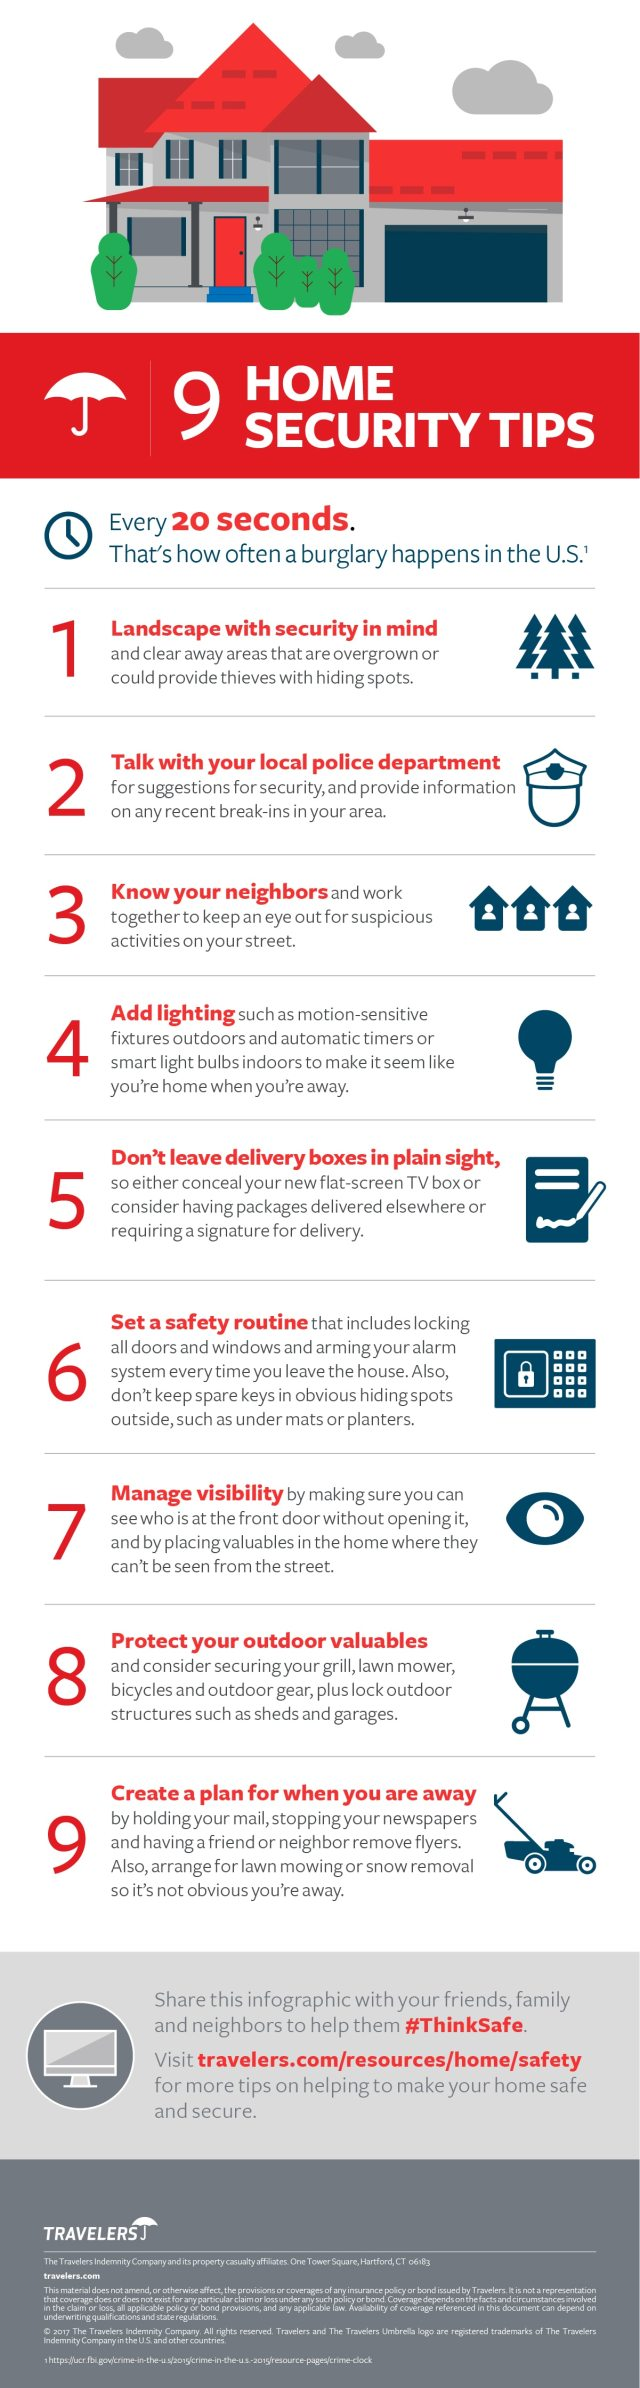 9 home security tips infographic 9 Home Security Tips [Infographic]